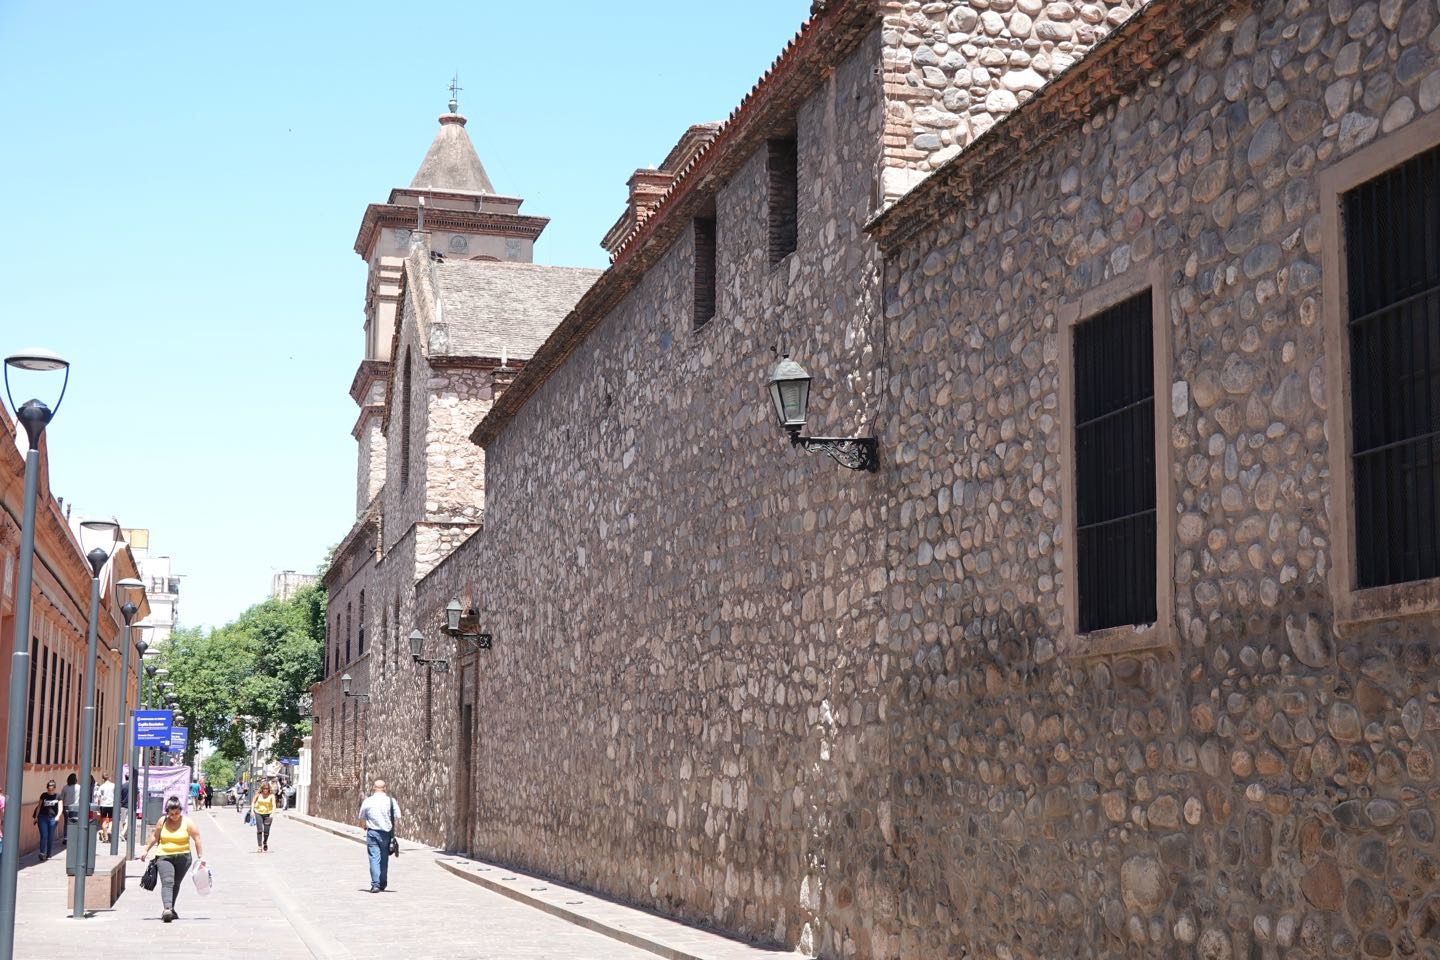 The Jesuit Block. One of the UNESCO World Heritage Sites of Argentina